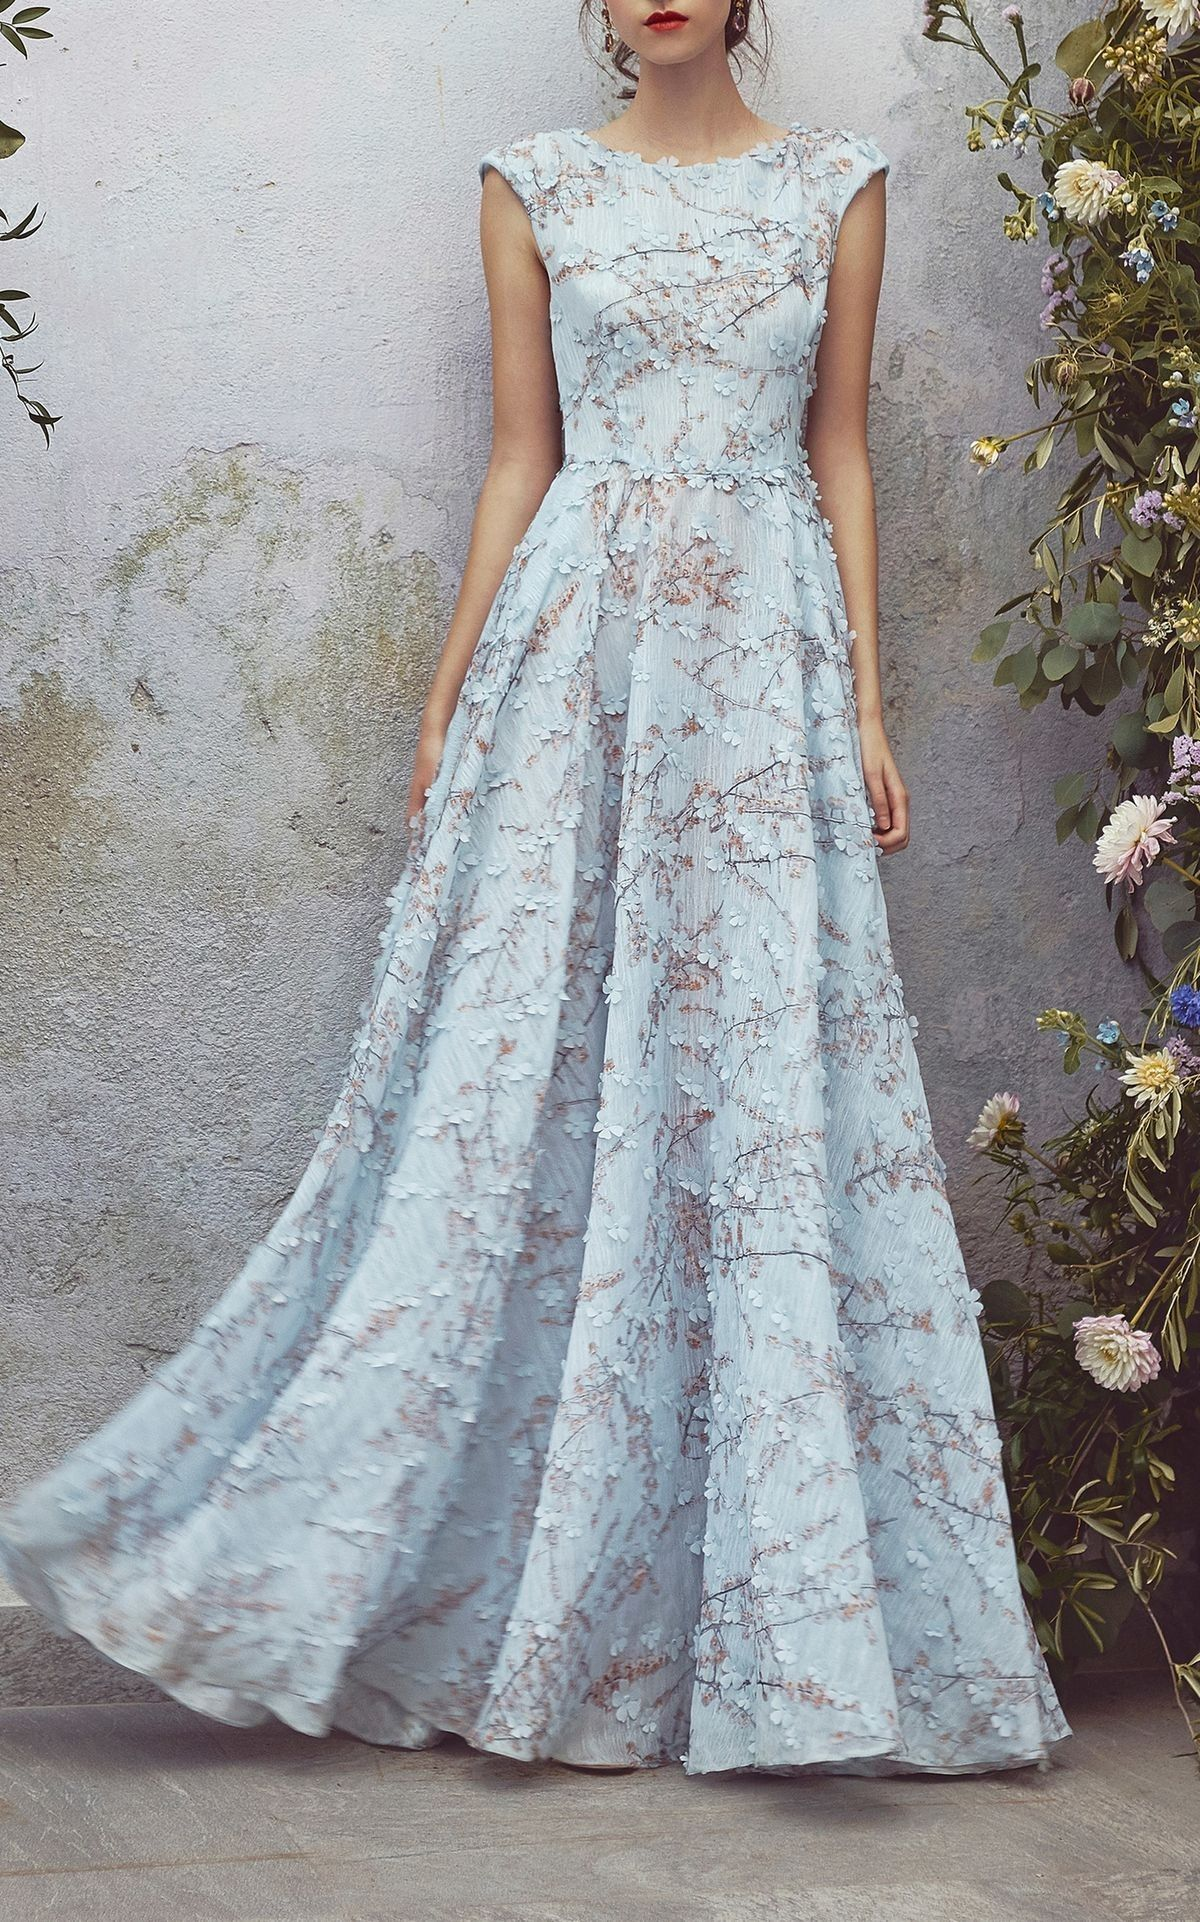 Paleblue embroidered gown dress eveningdress eveningwear my